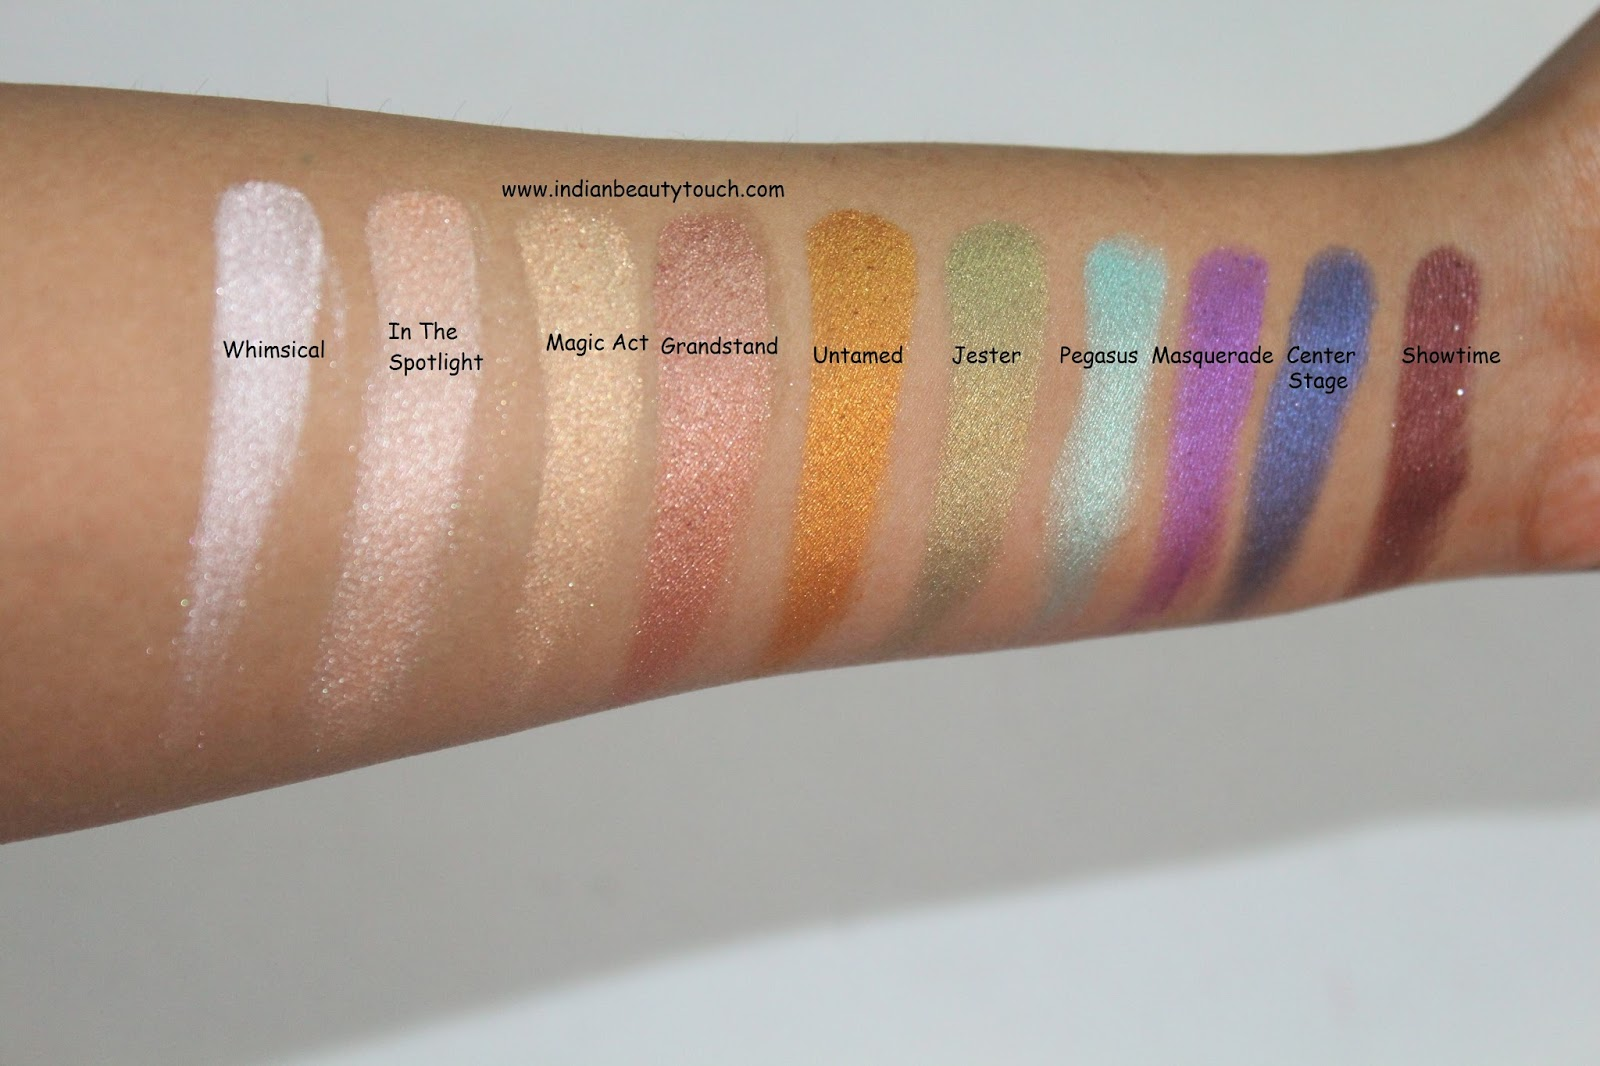 Top Makeup Geek Eye shadows Swatches and Review - Indian Beauty Touch HV01